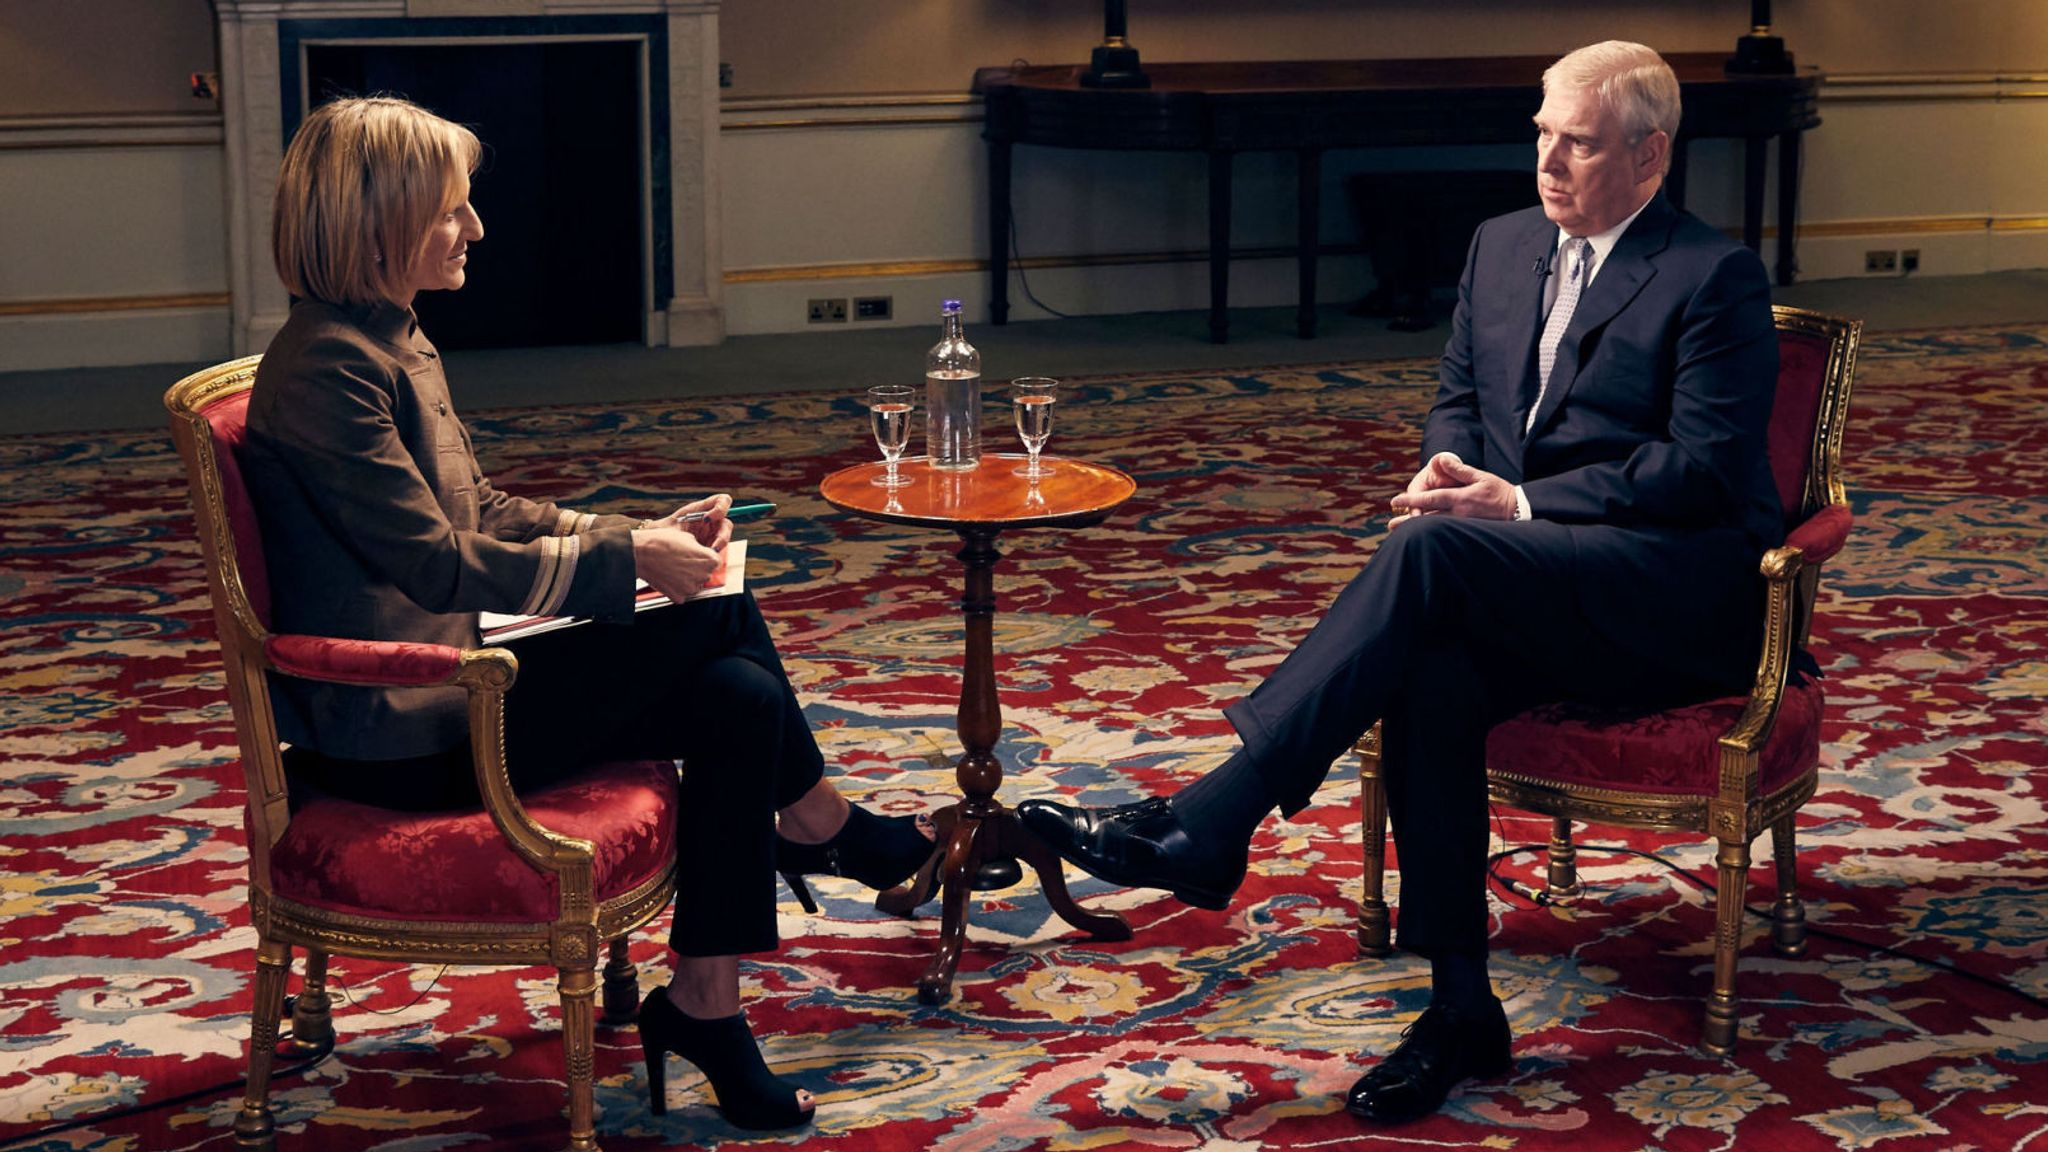 Prince Andrew's Newsnight interview branded 'disastrous' and 'excruciating'